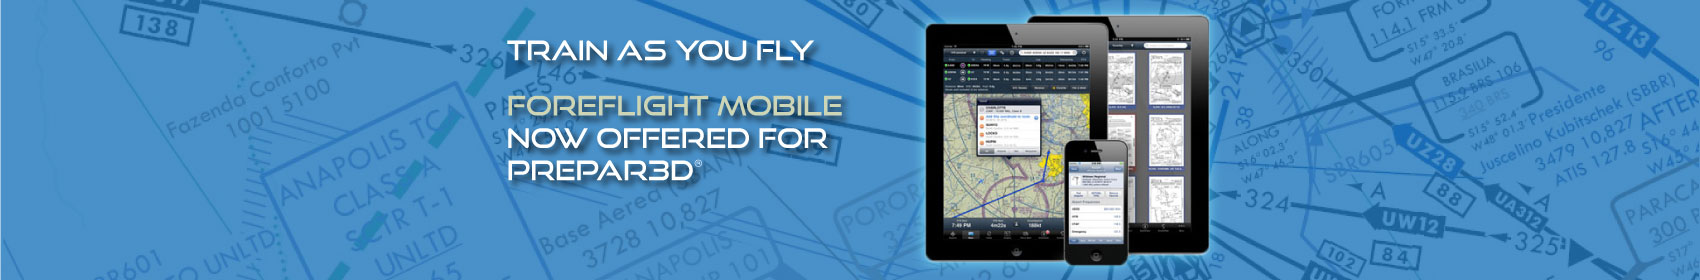 ForeFlight-3-21